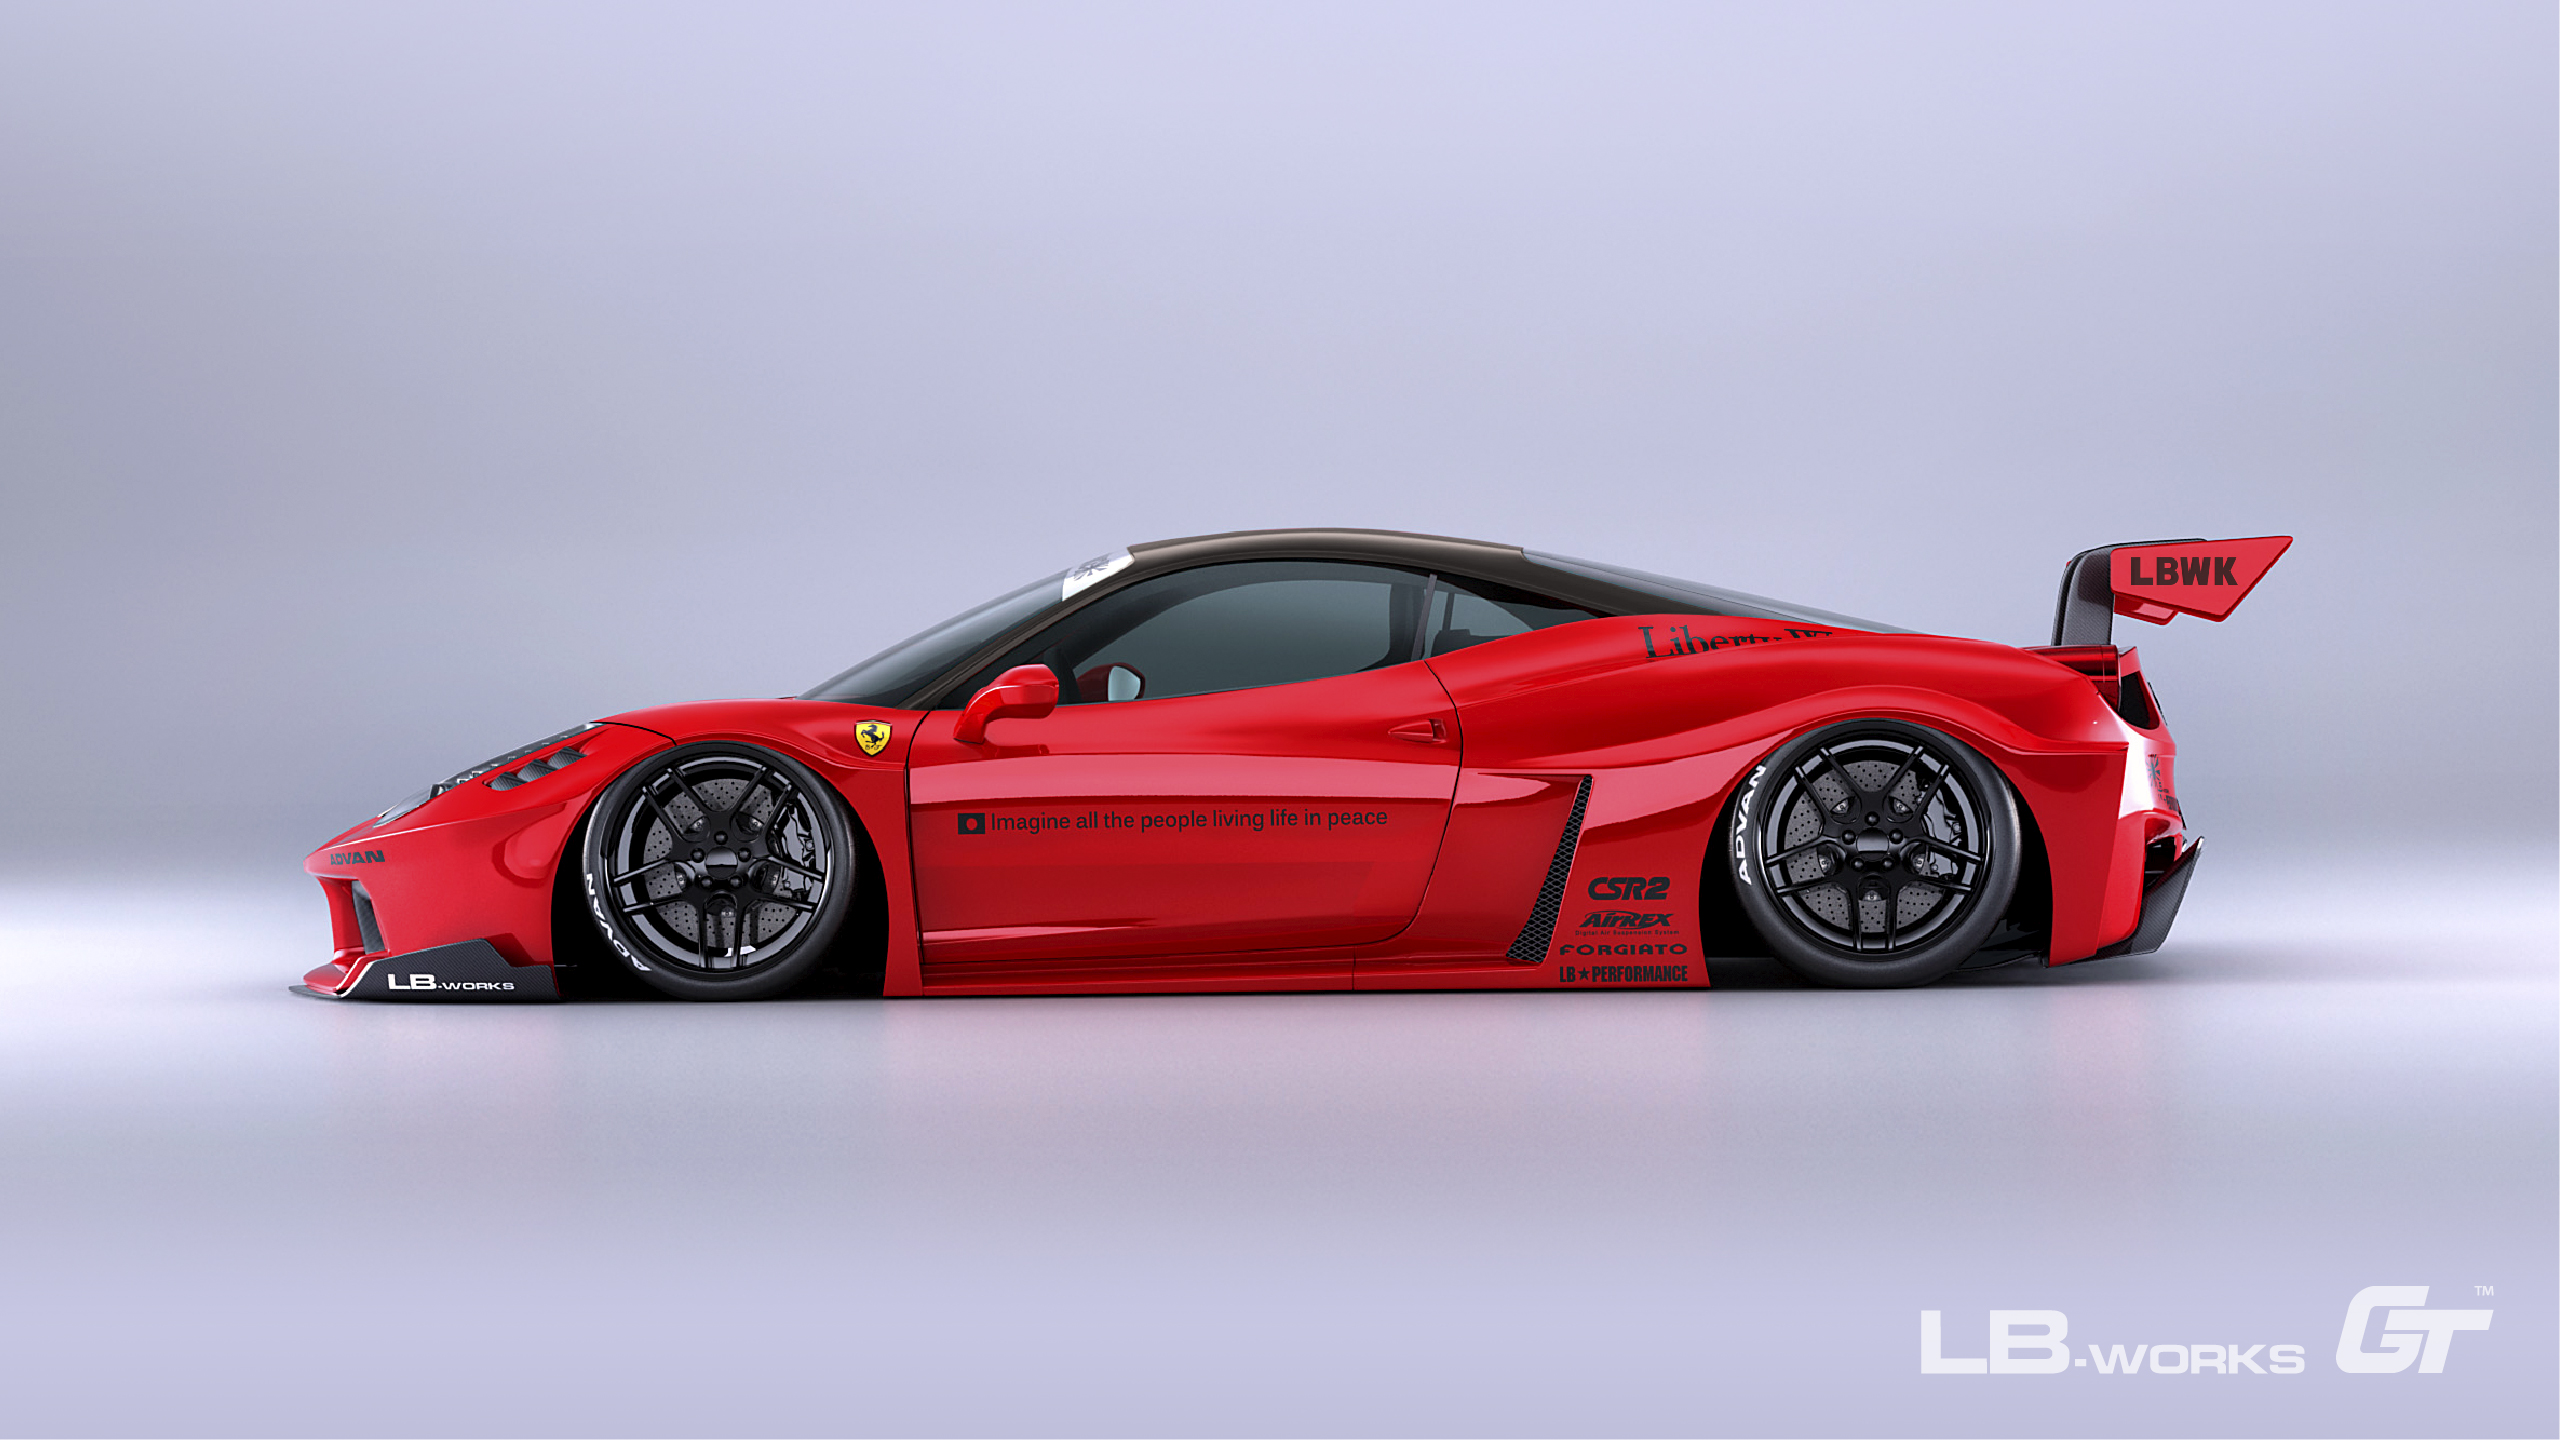 18-100 LB-Silhouette WORKS 458 GT